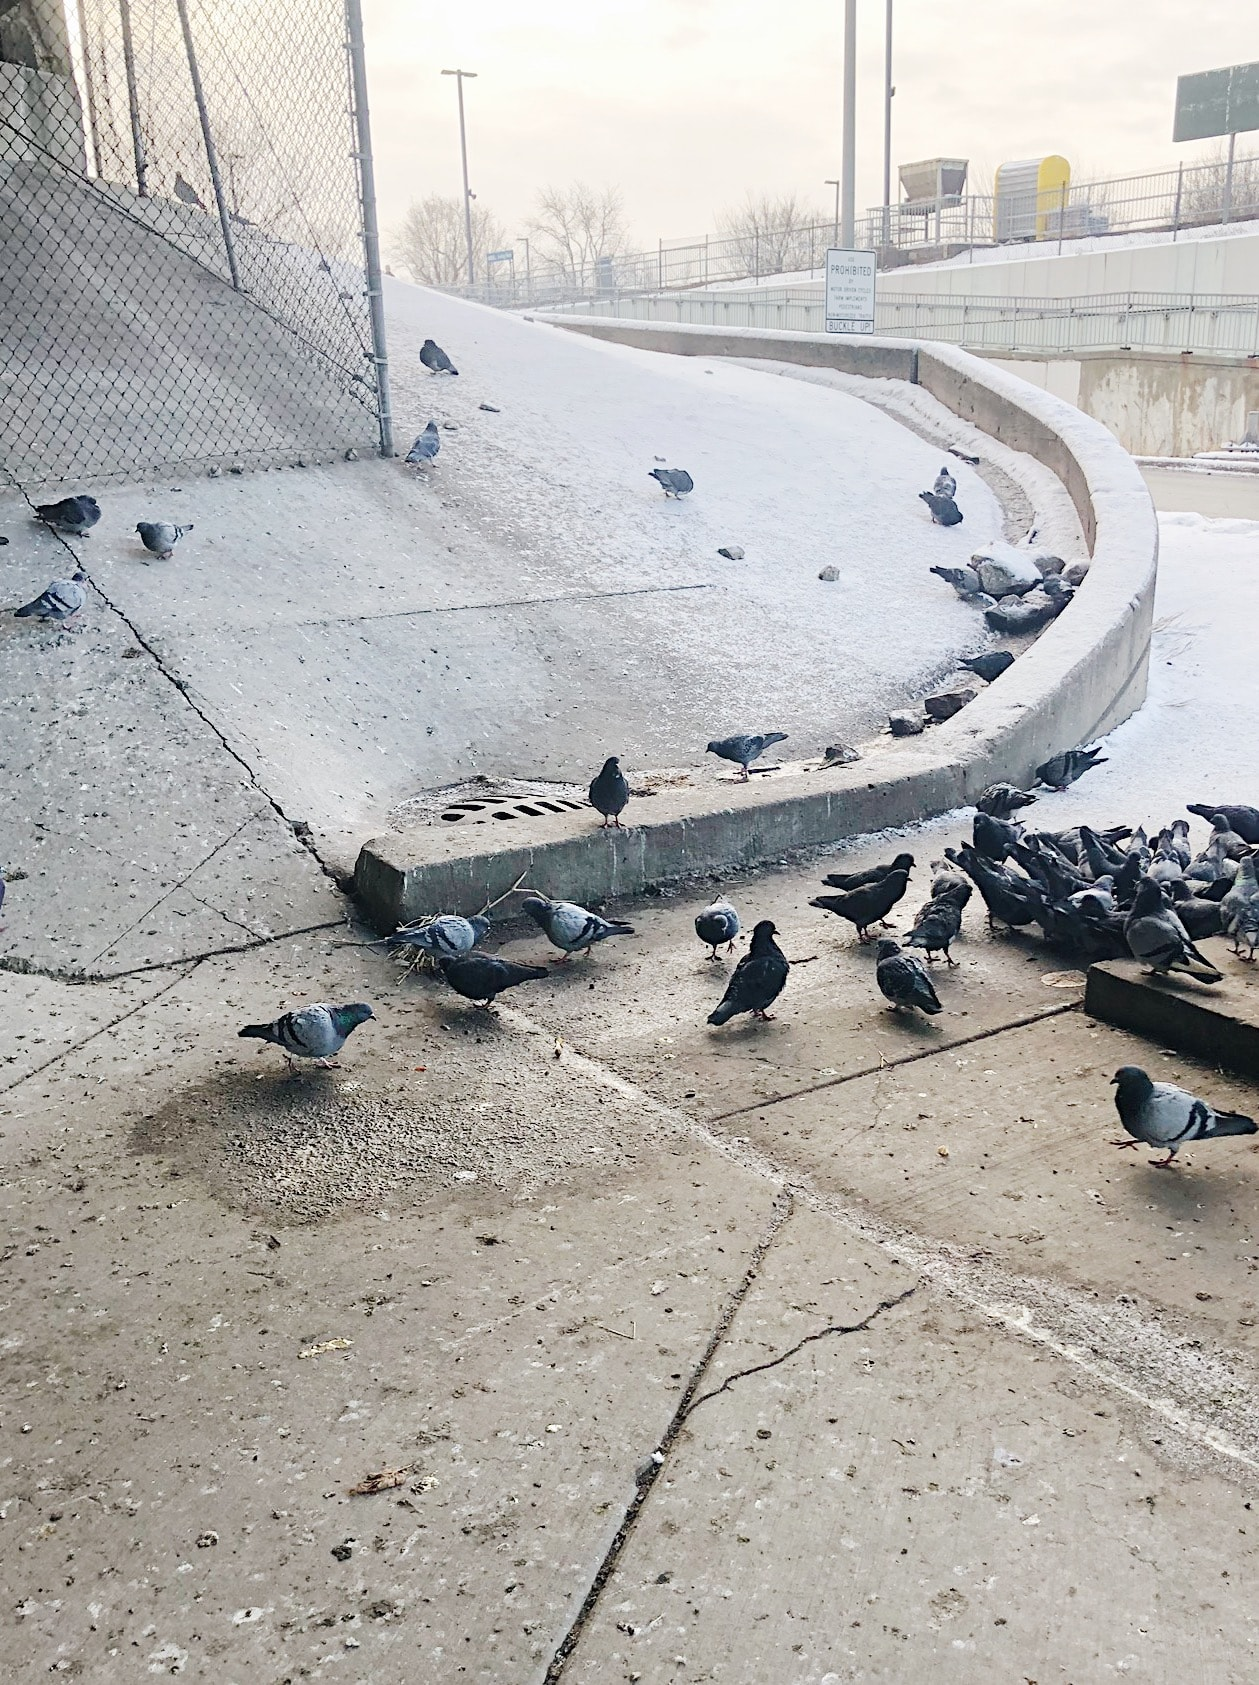 Pigeons under the train